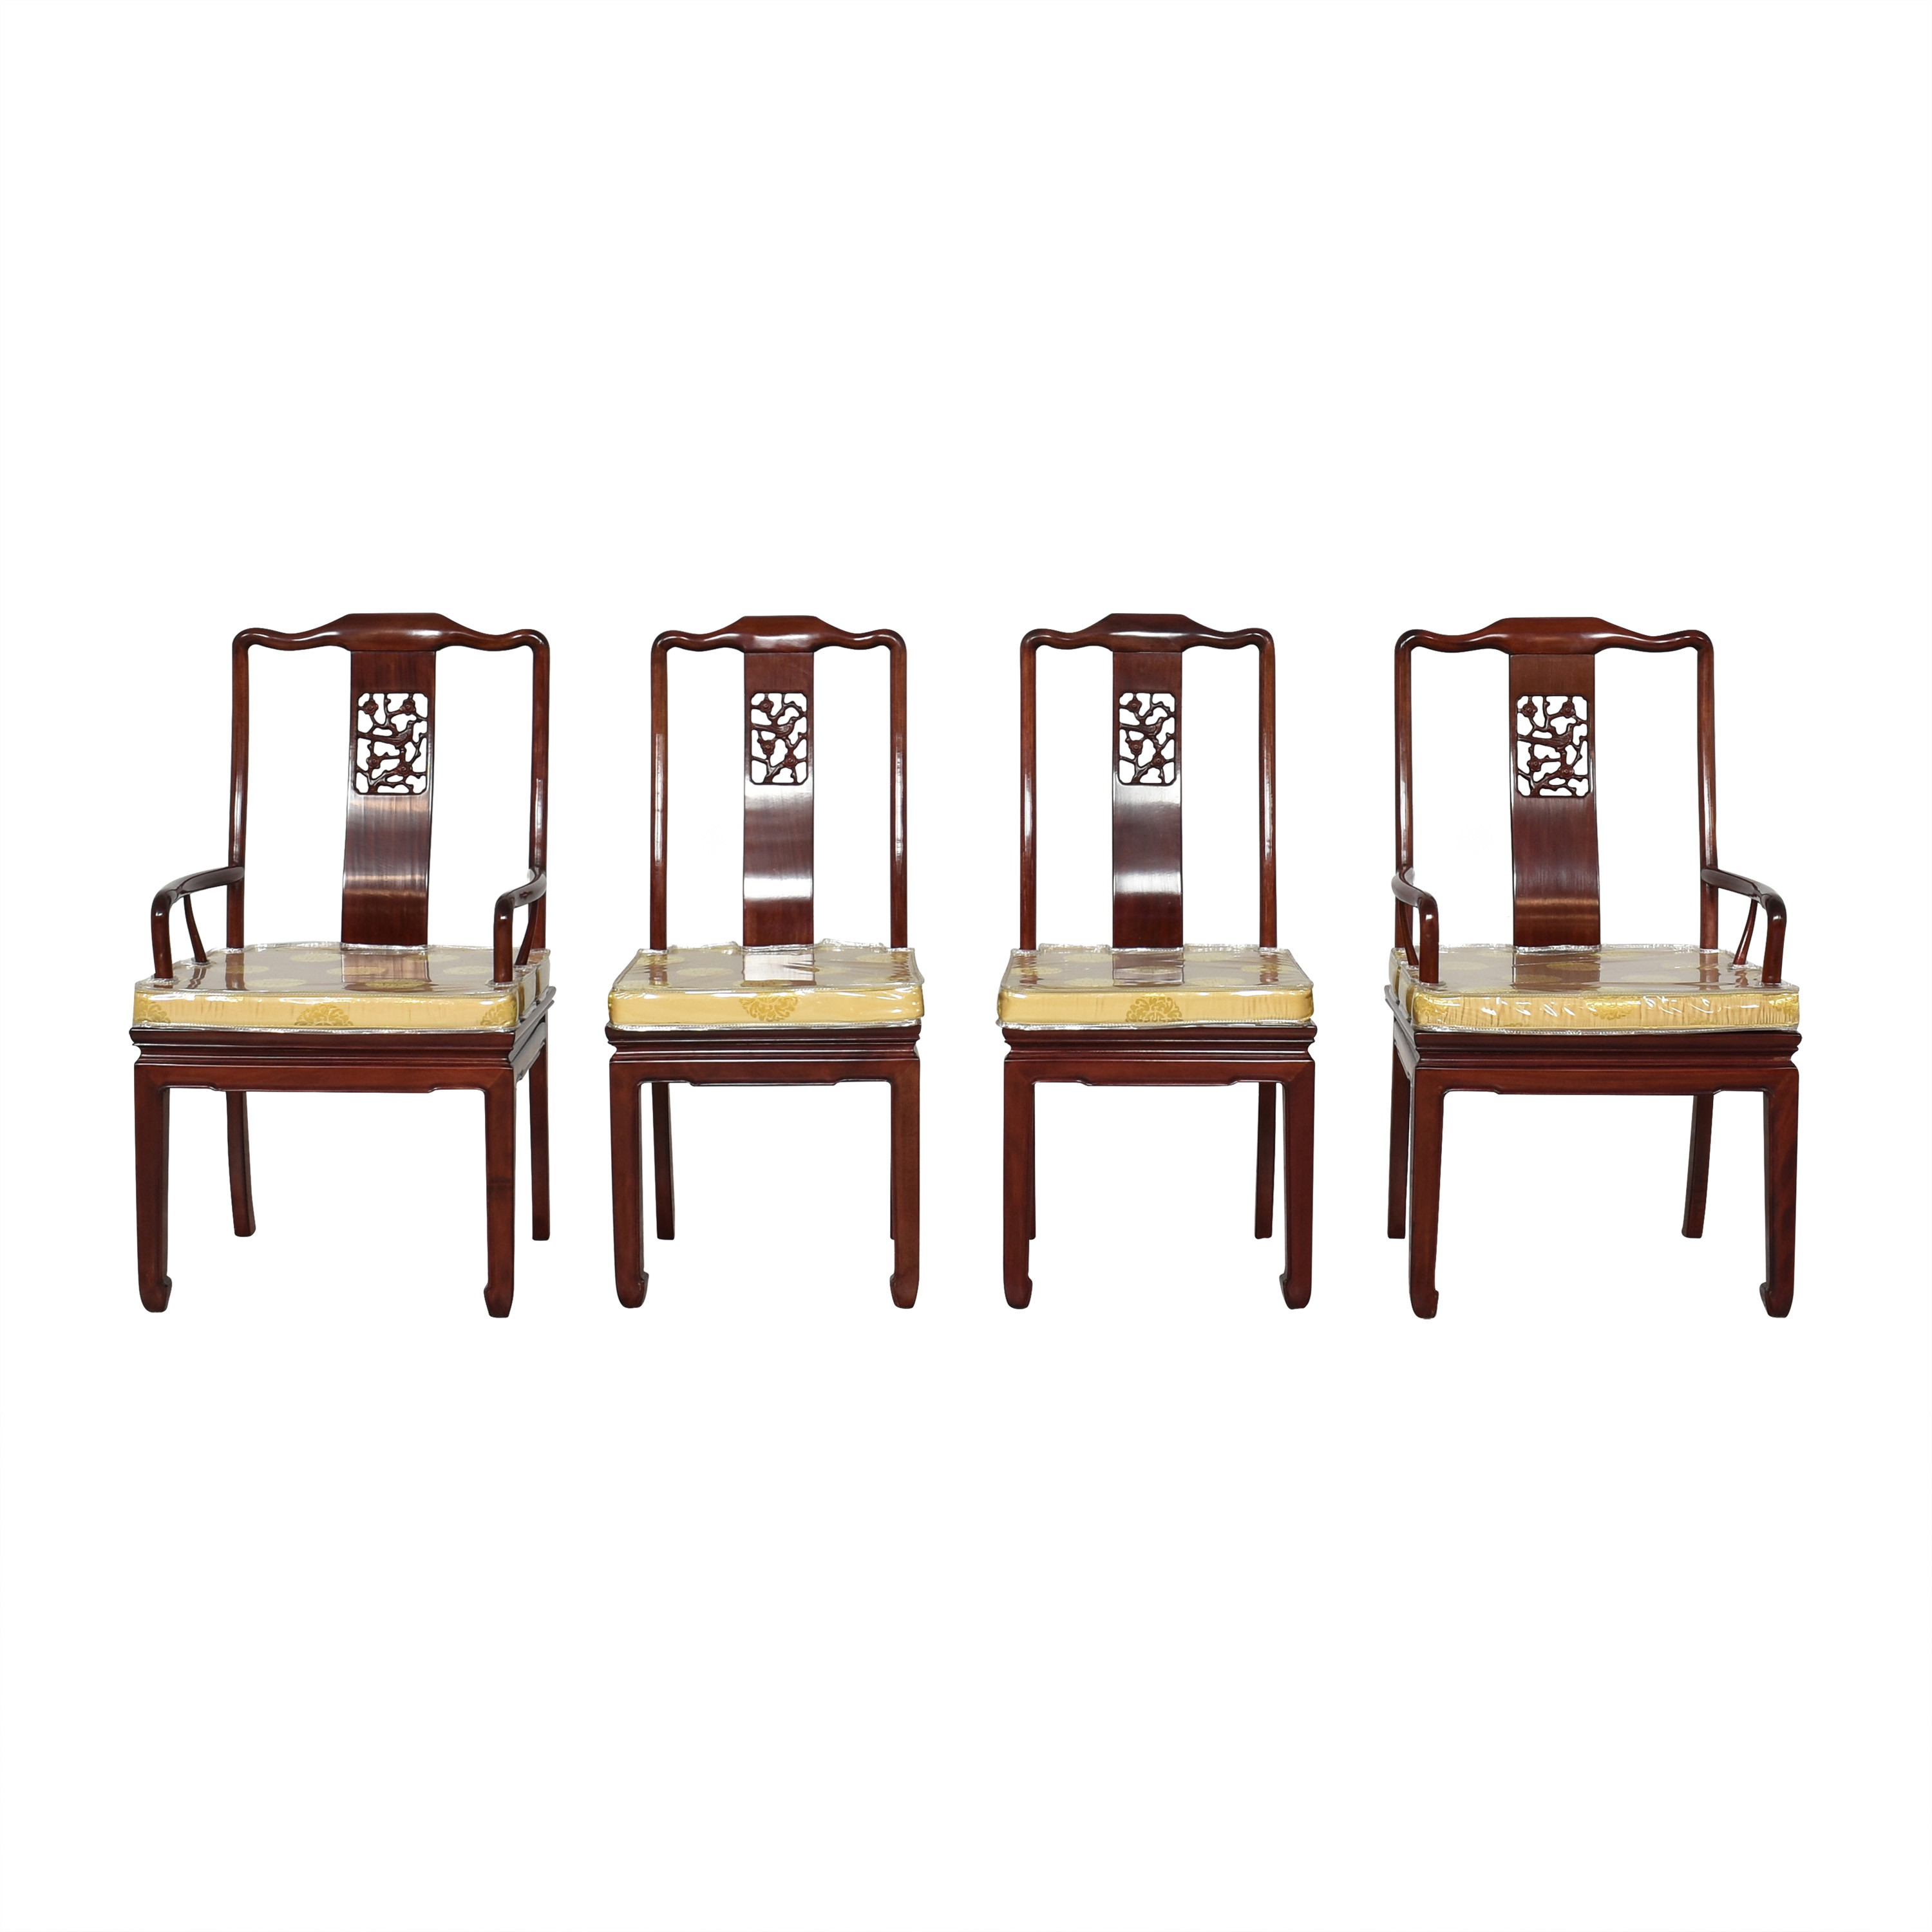 Chinoiserie Dining Chairs Brown and Beige